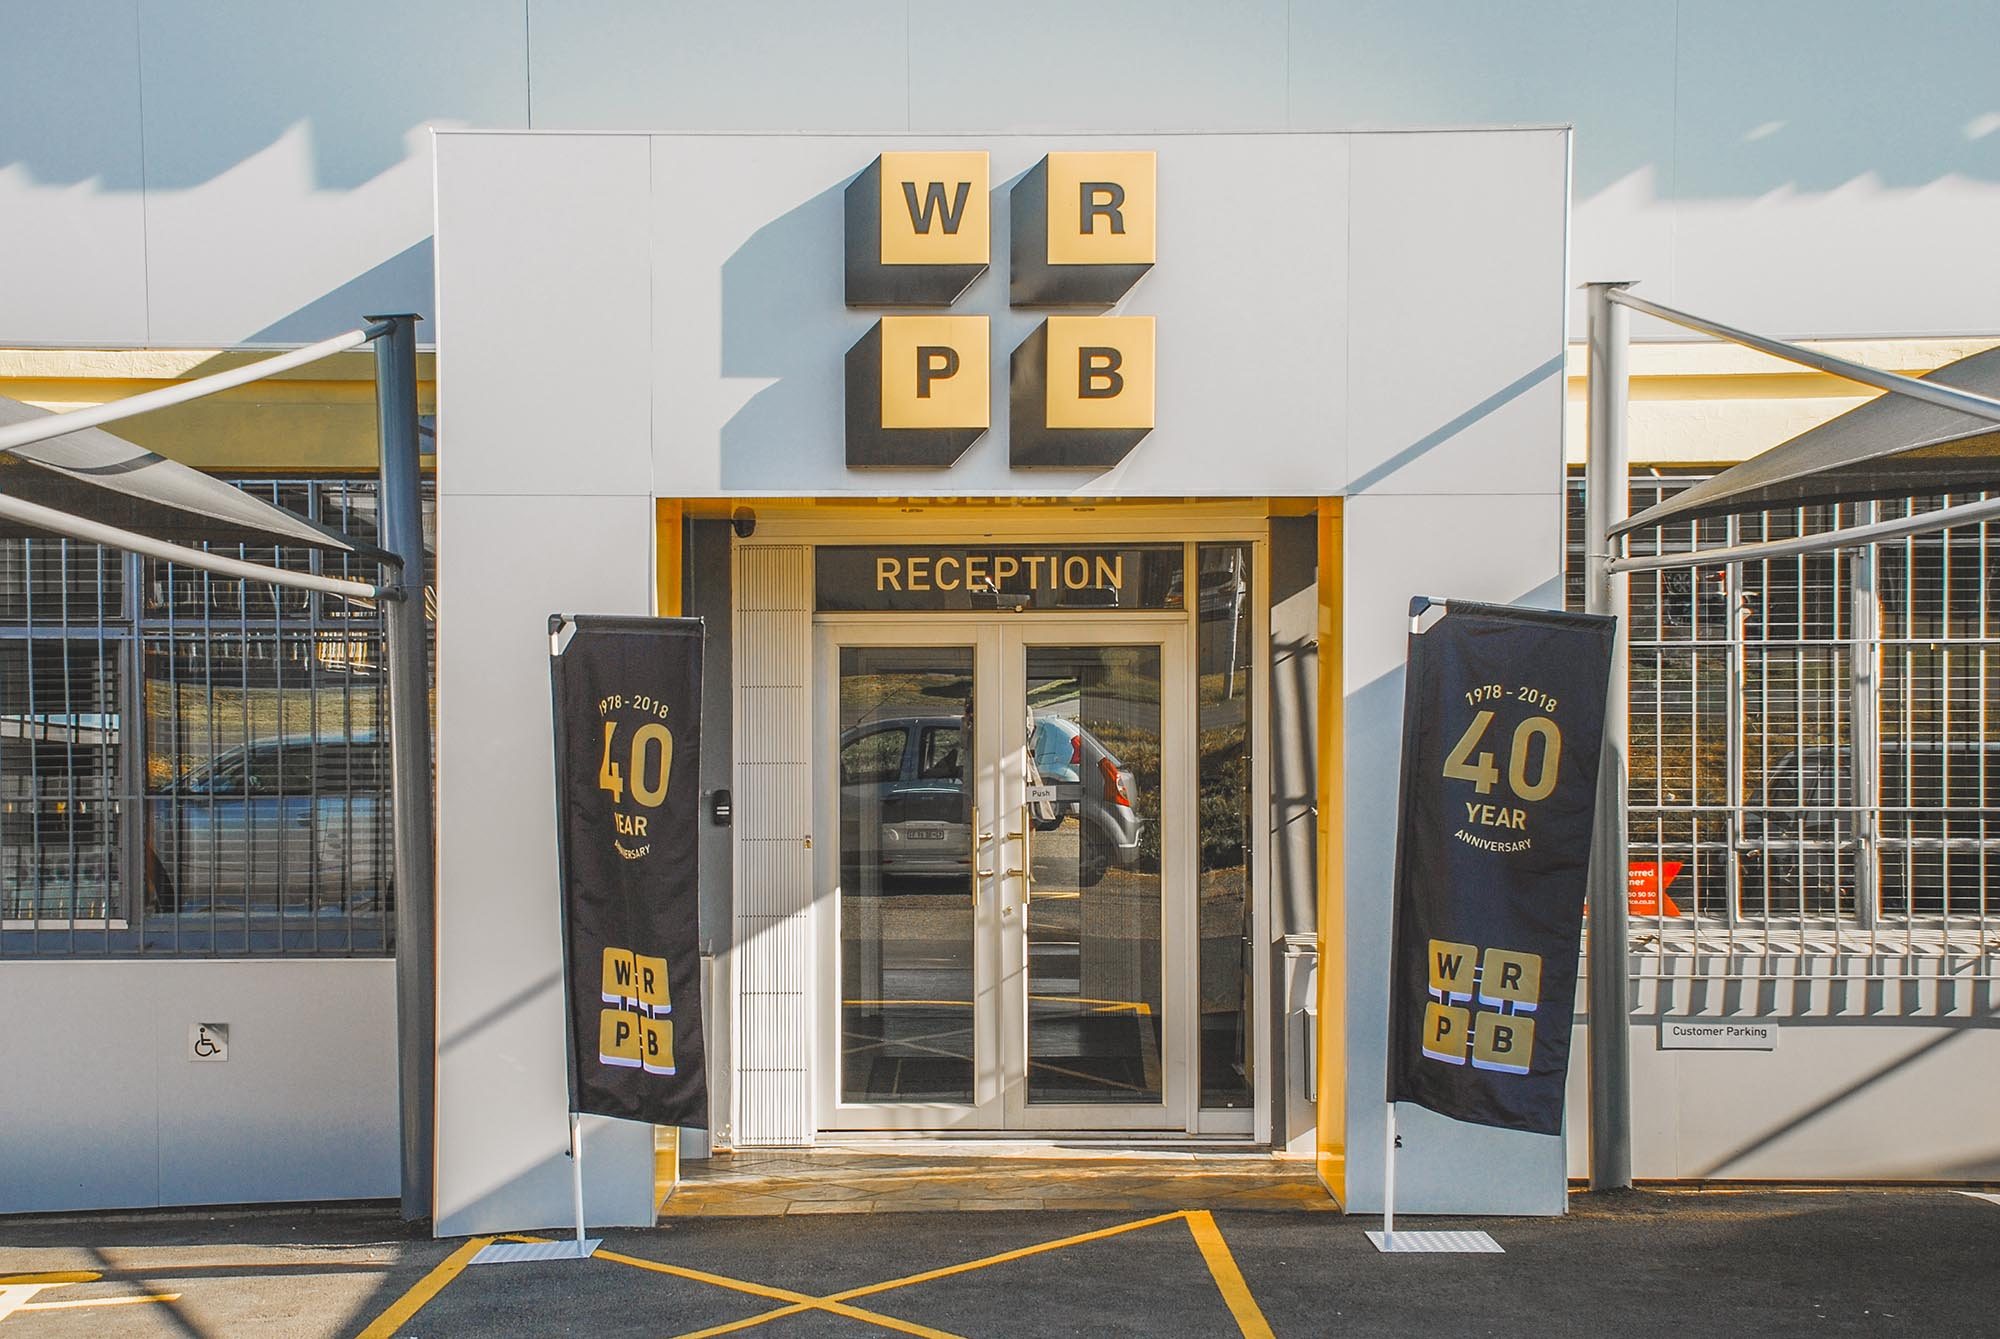 West Rand Panel Beaters celebrating 40 years in business anniversary